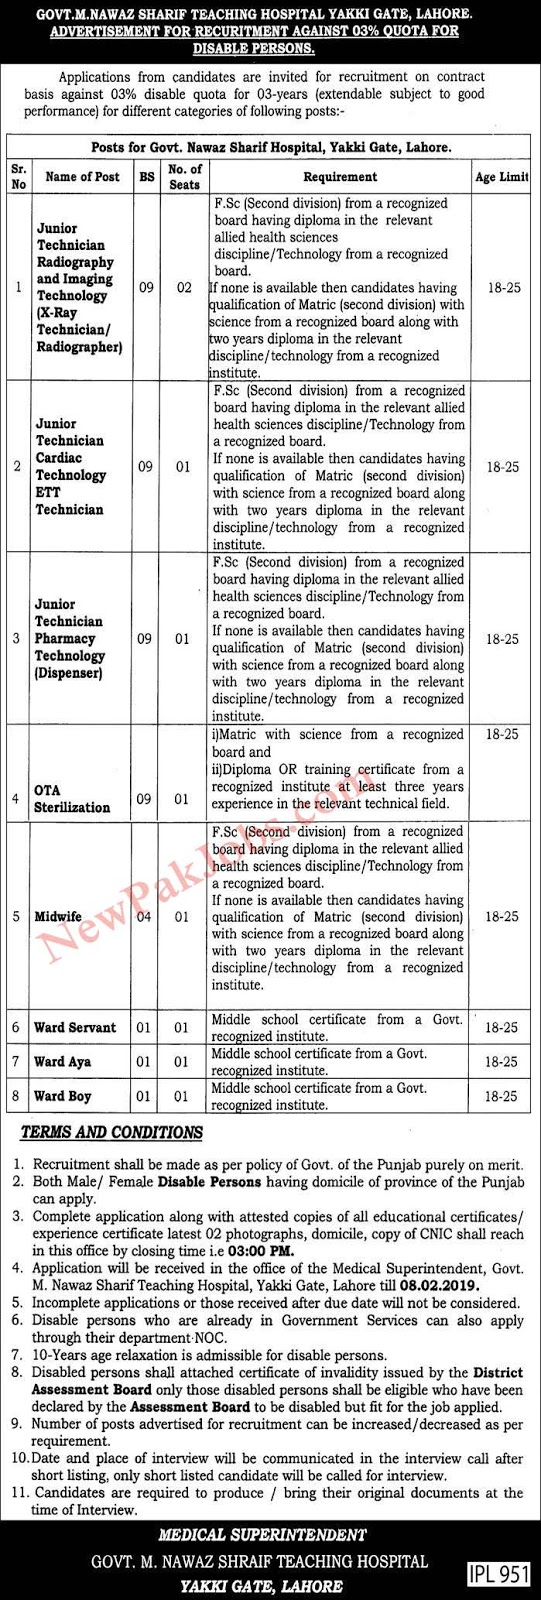 Govt M,.Nawaz Sharif Teaching Hospital Yakki Gate Lahore Jobs 2019